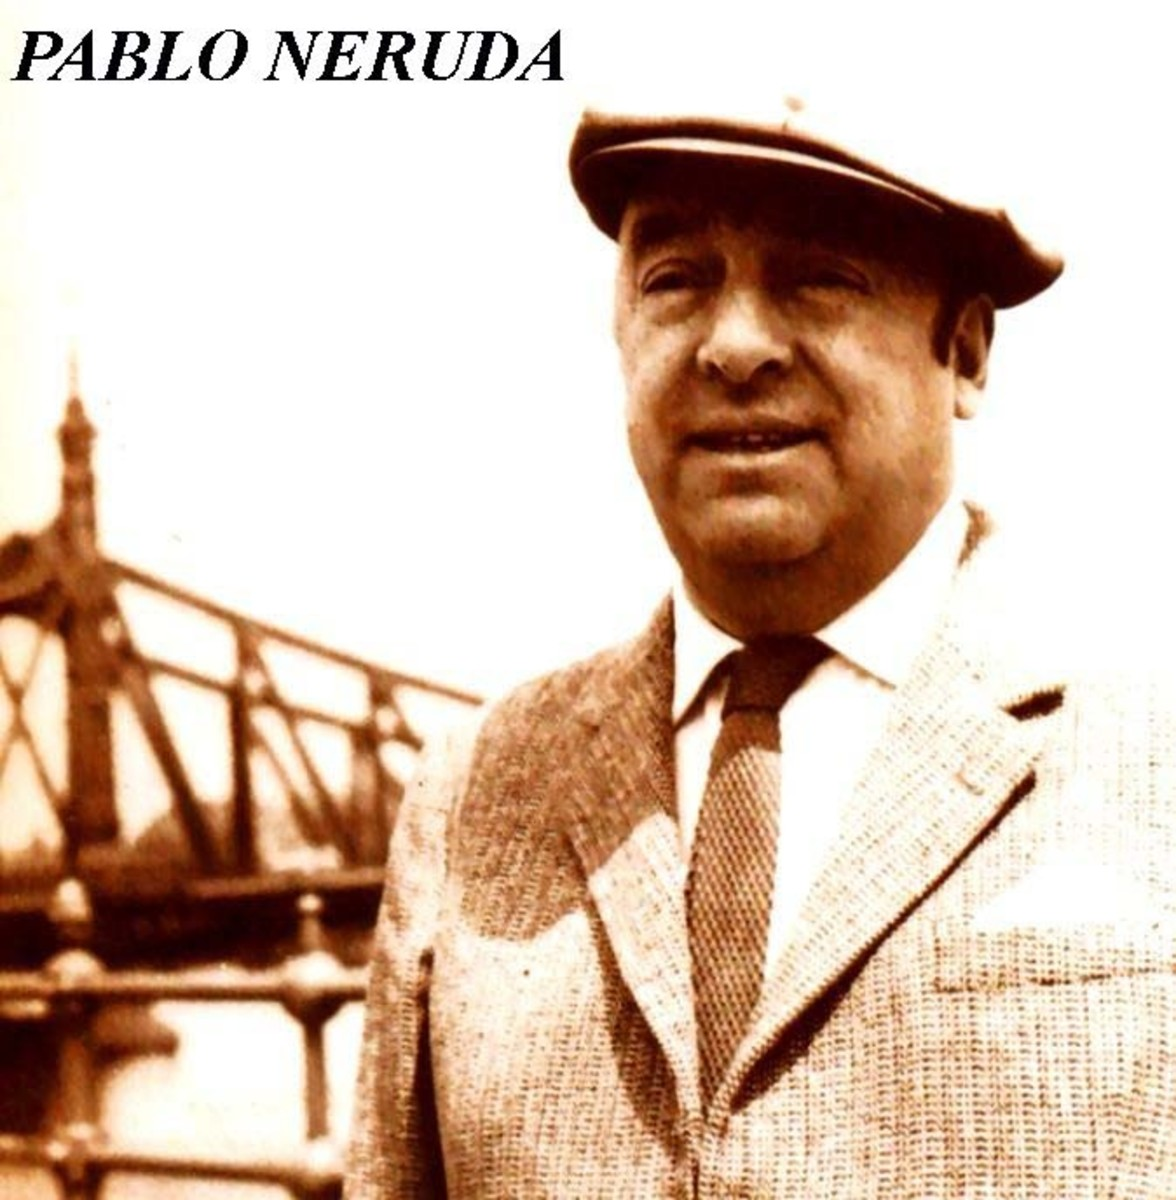 Pablo Neruda: A Great Modern Lyrical Poet